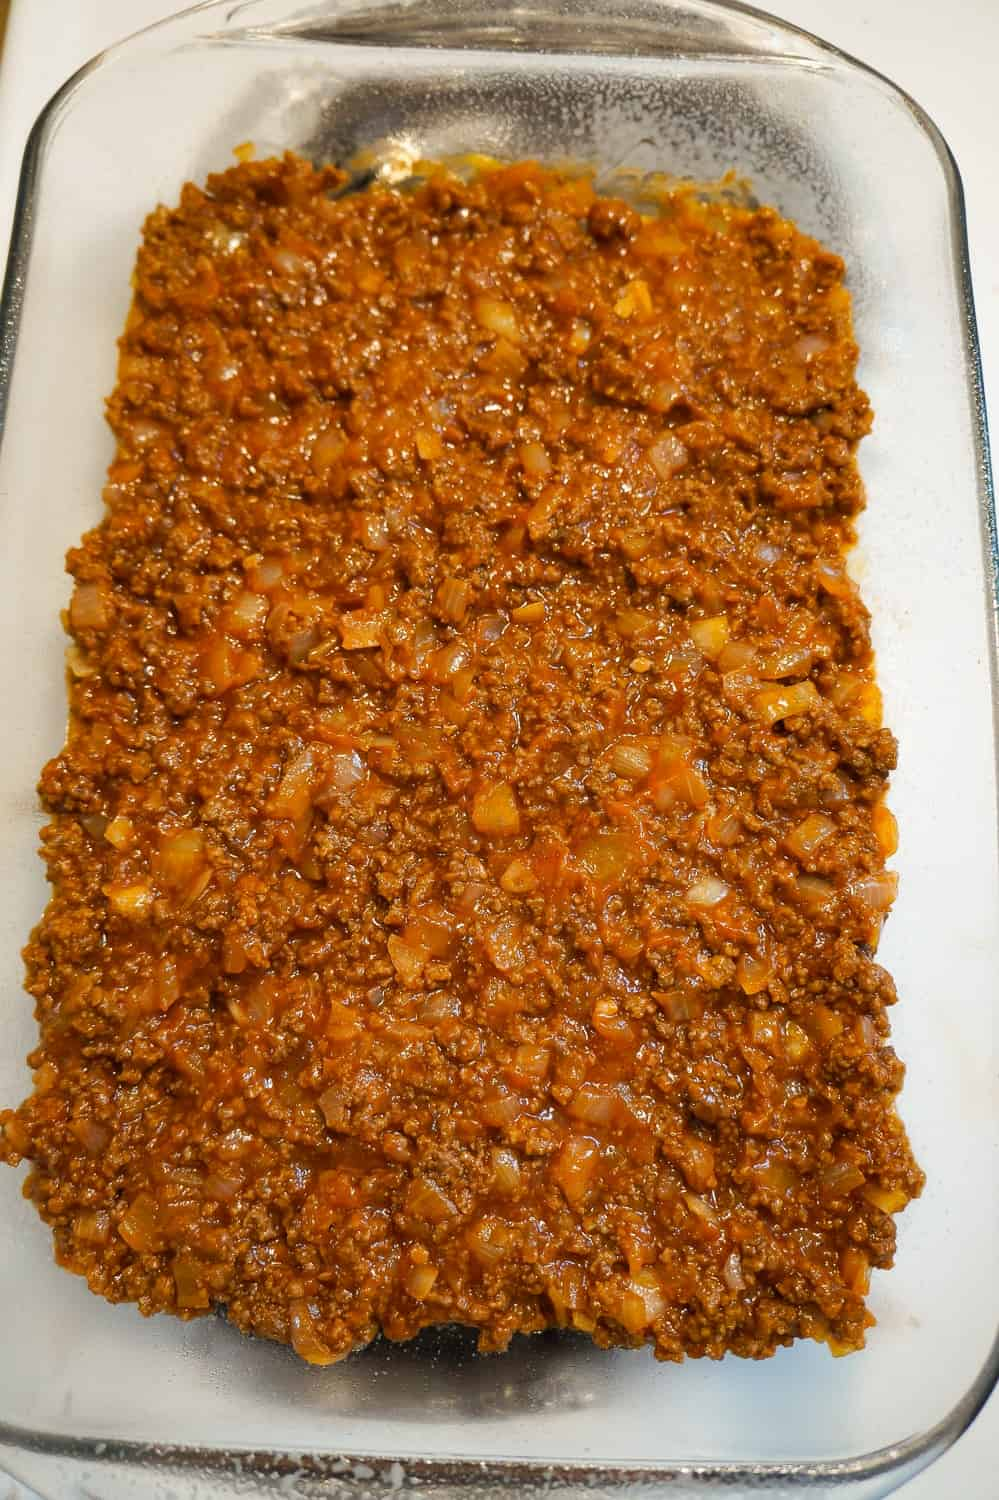 sloppy joe meat mixture in a 9 x 13 inch baking dish